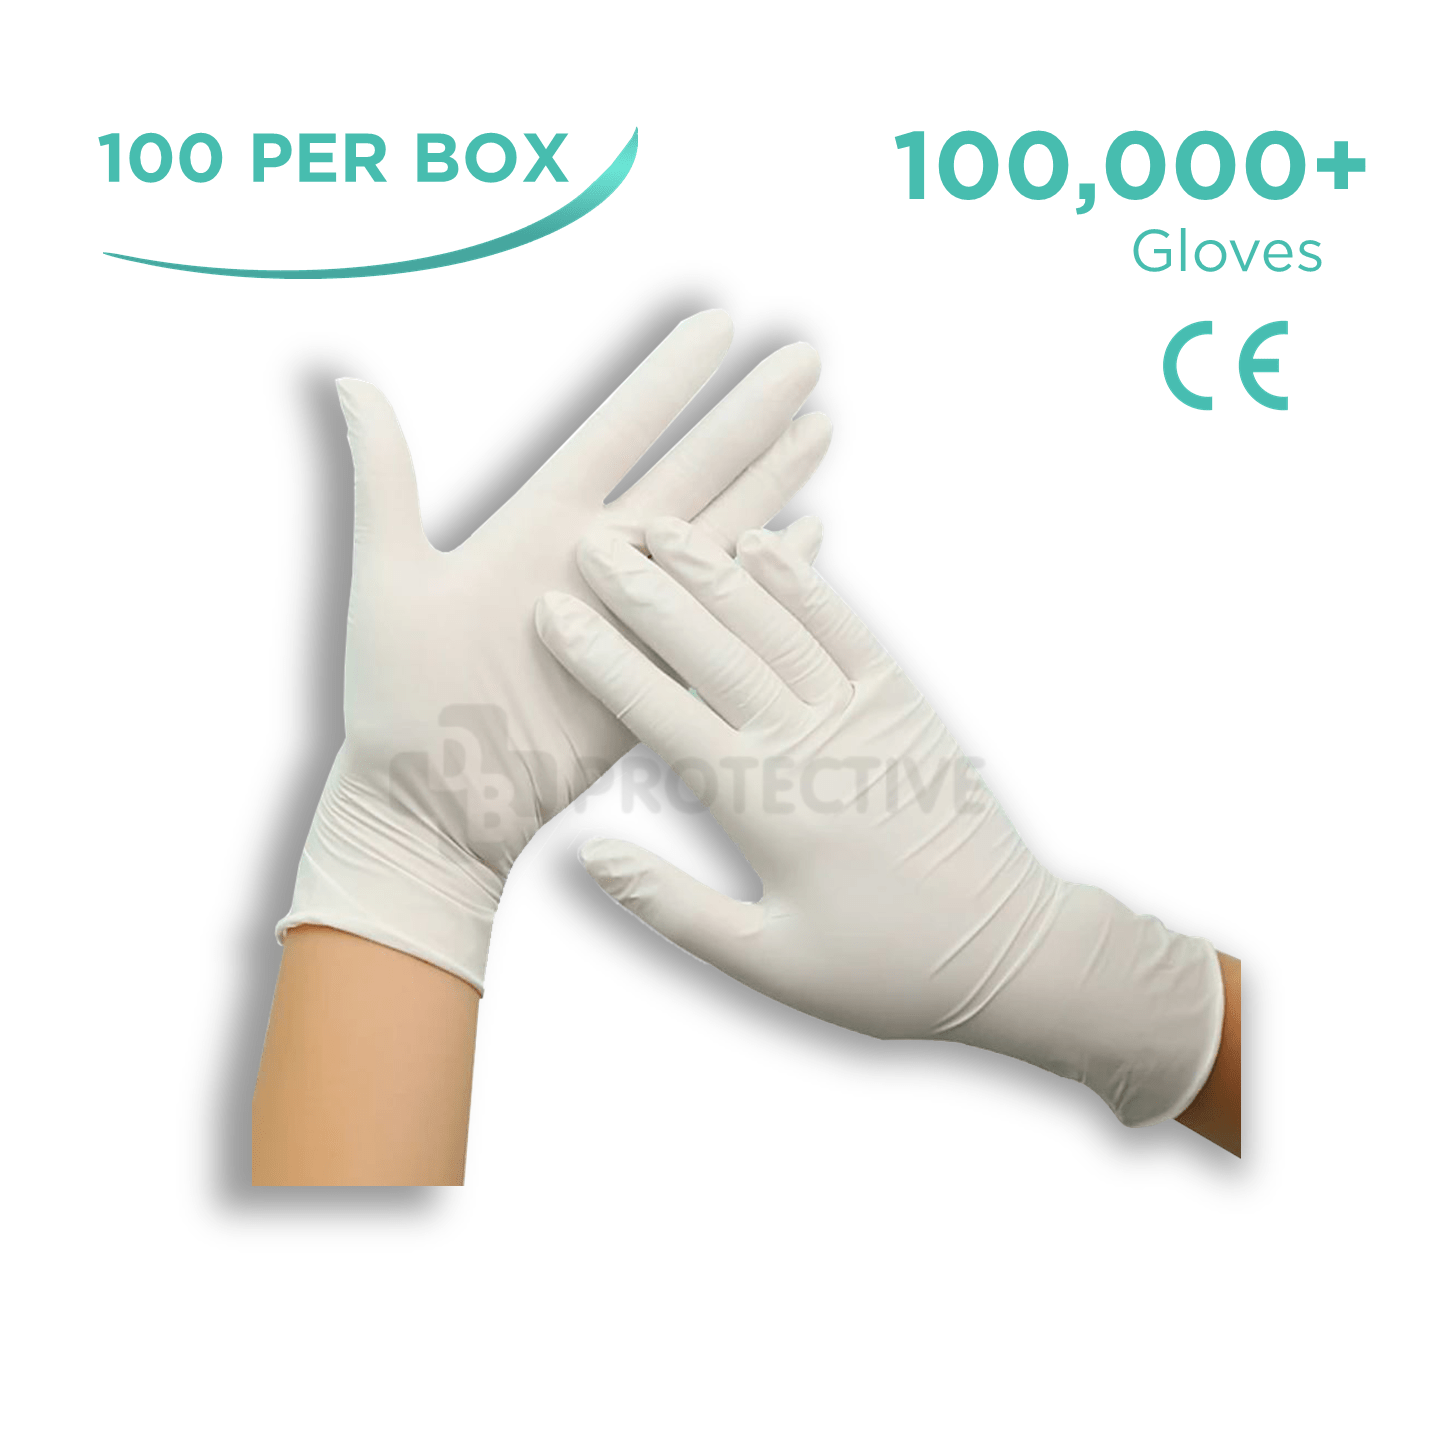 Latex Gloves - Pack of 100,000 - USA Medical Supply - DB Protective